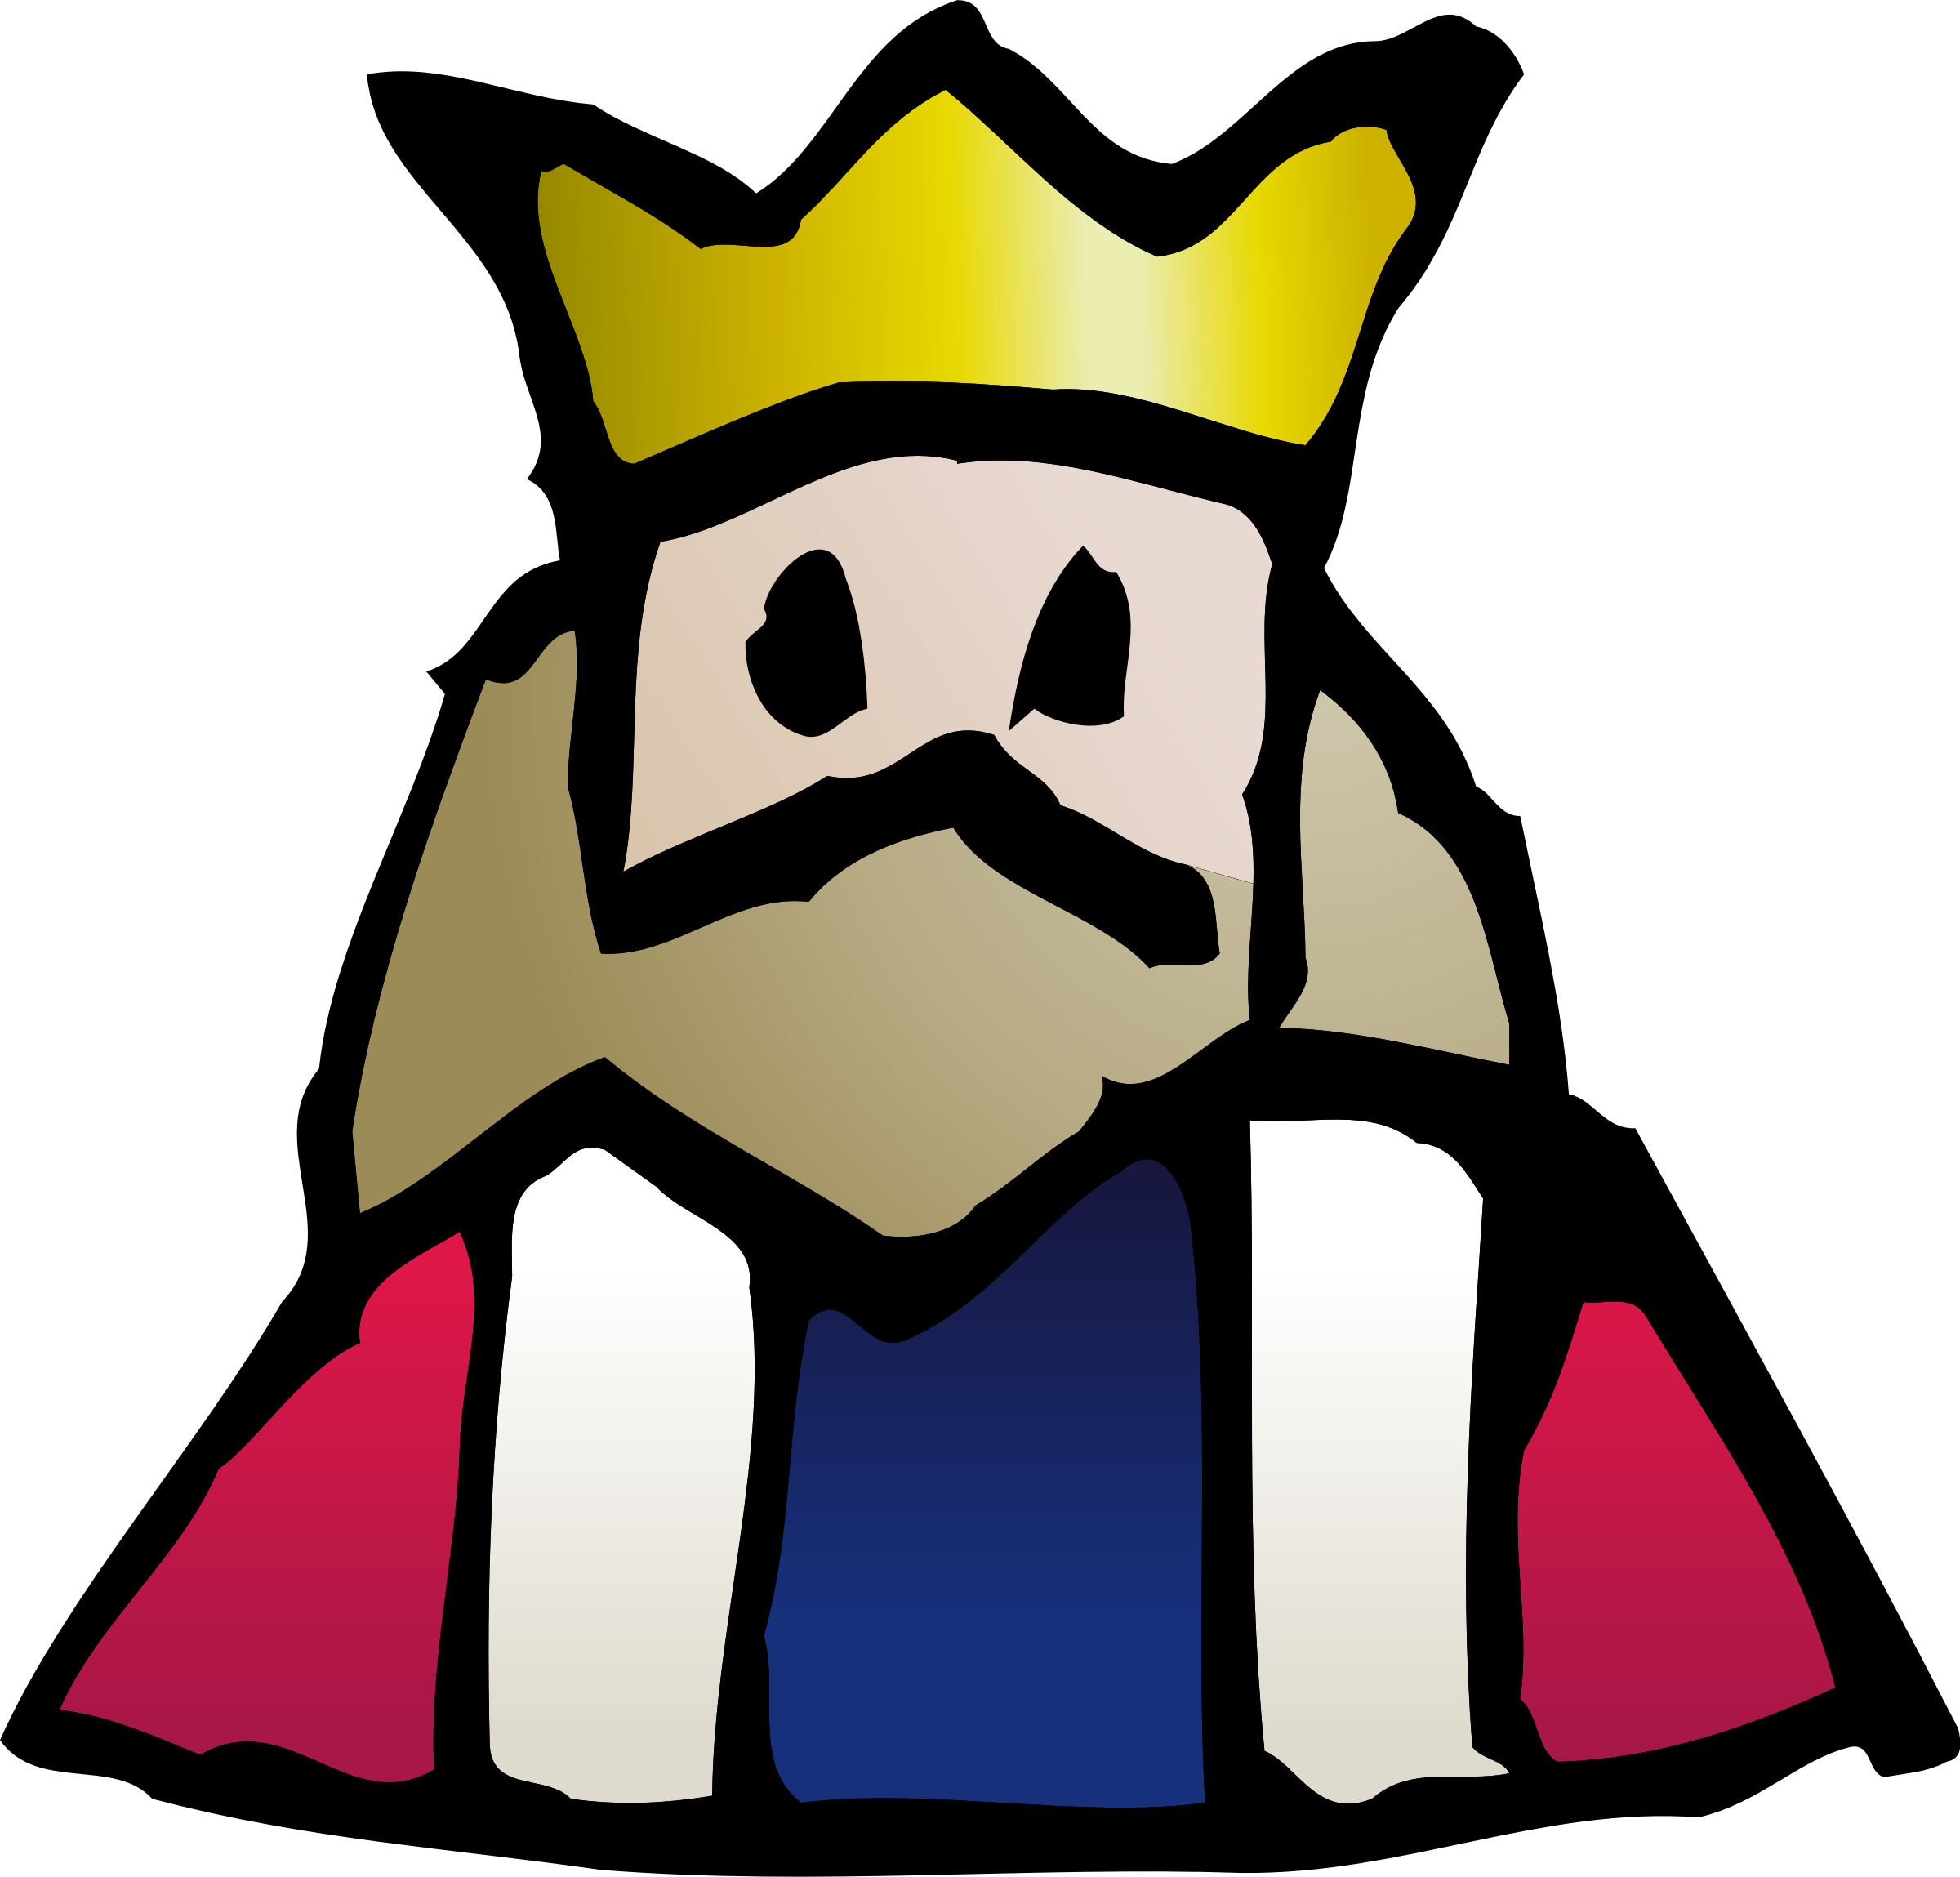 king icon by Klàro